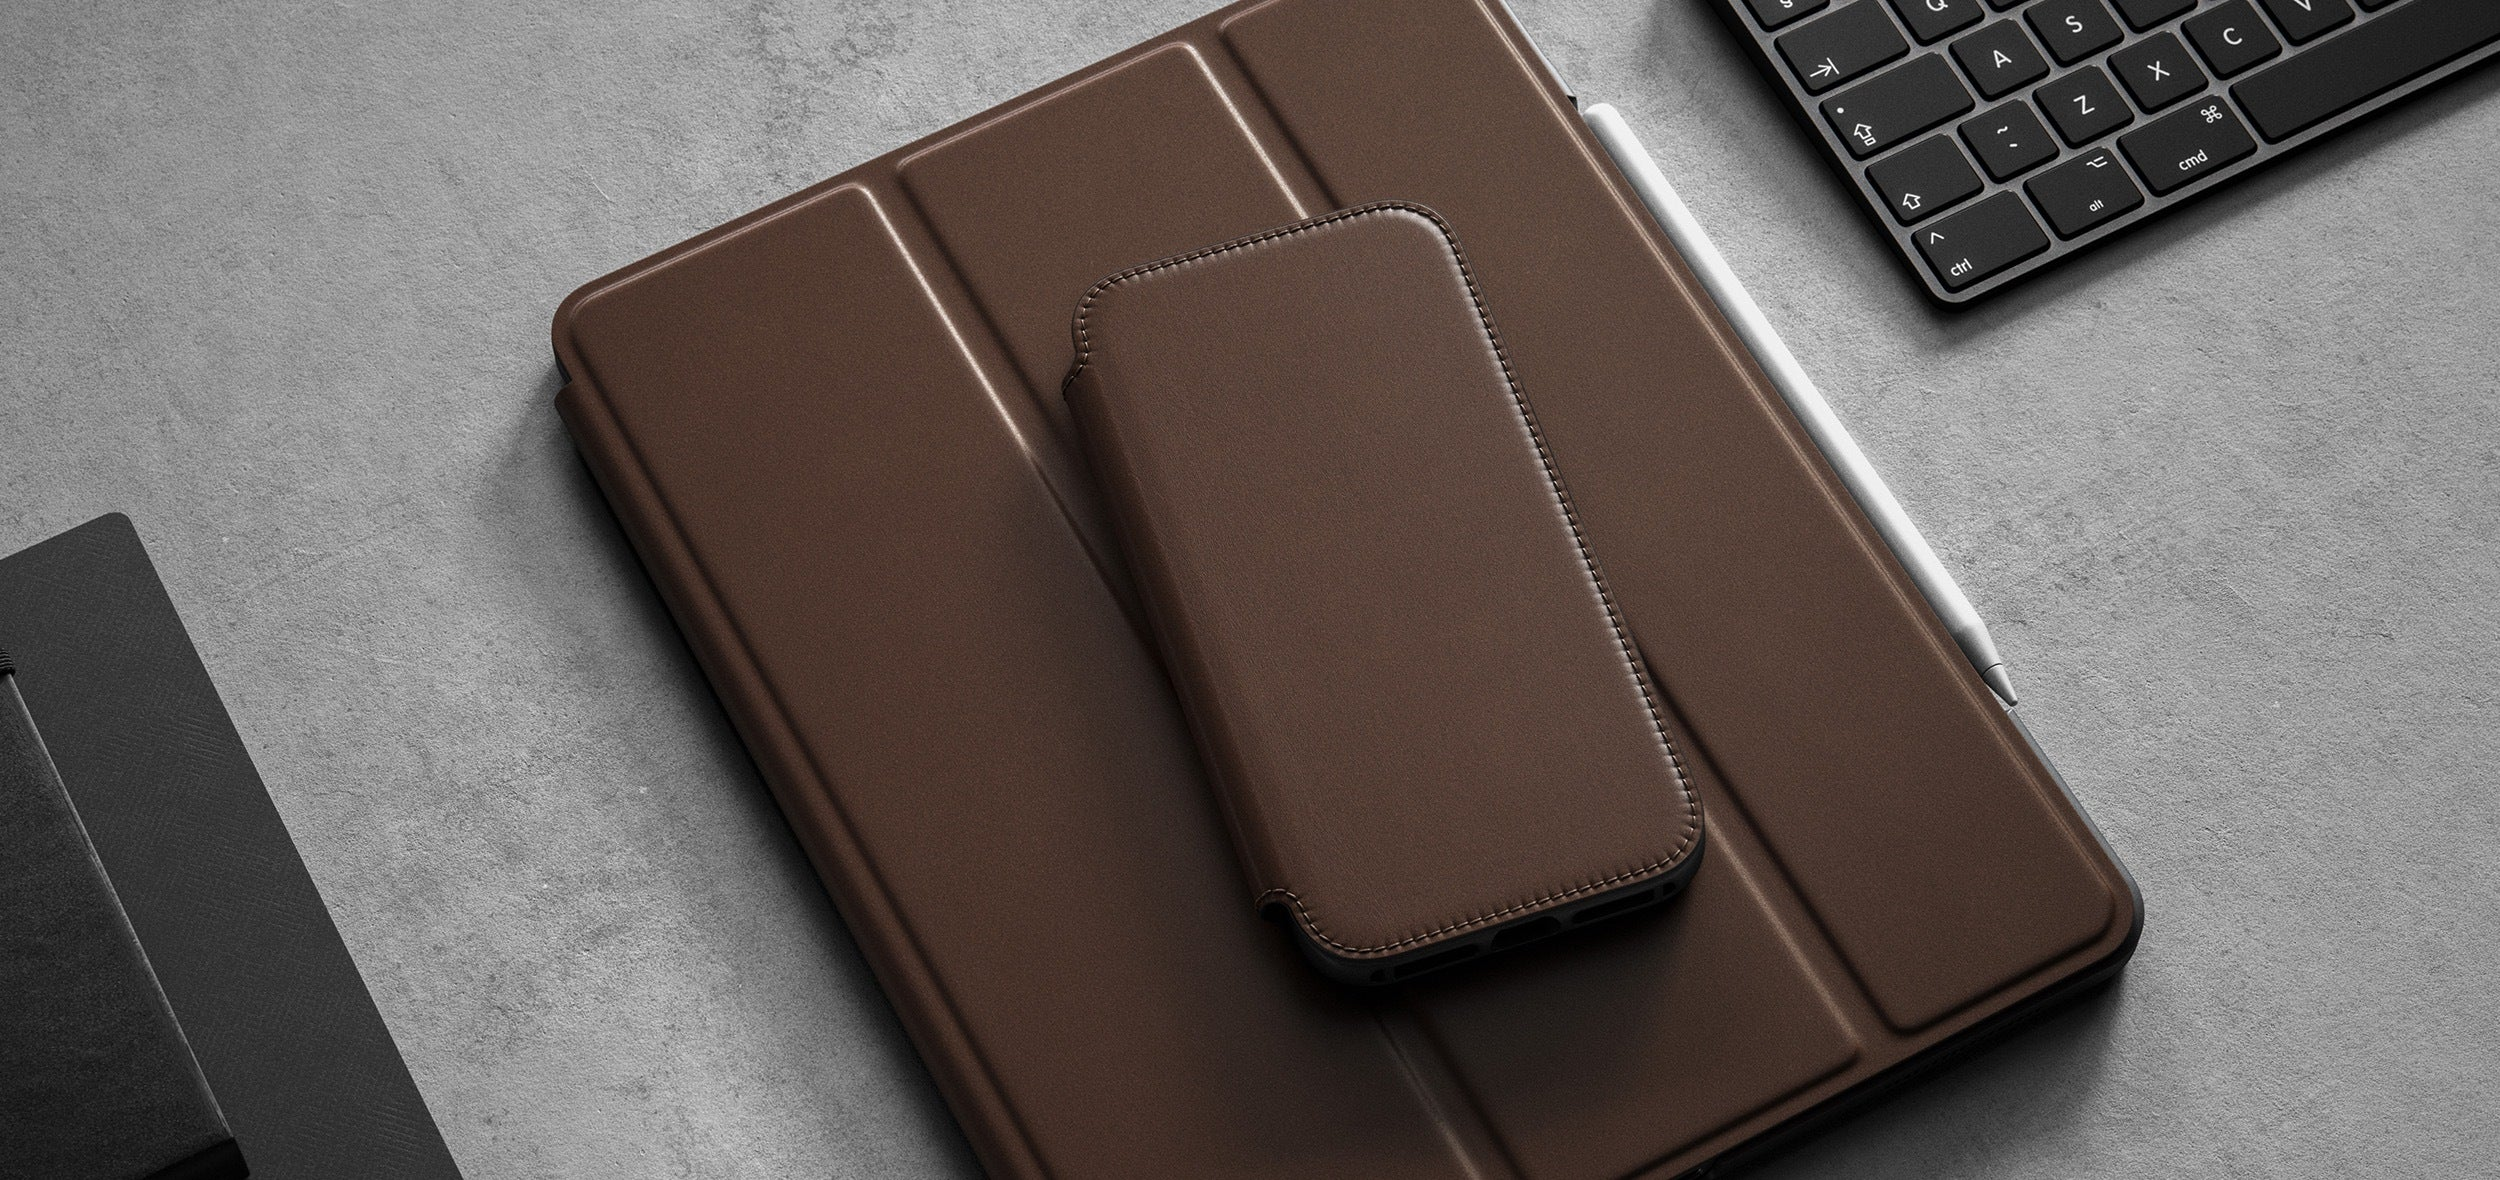 https://cdn.shopify.com/s/files/1/0384/6721/files/iPhone_12_Series_-_Rugged_Folio_Case_-_Lifestyle_04_-_Rustic_Brown_Leather_-_DESKTOP.jpg?v=1602795158